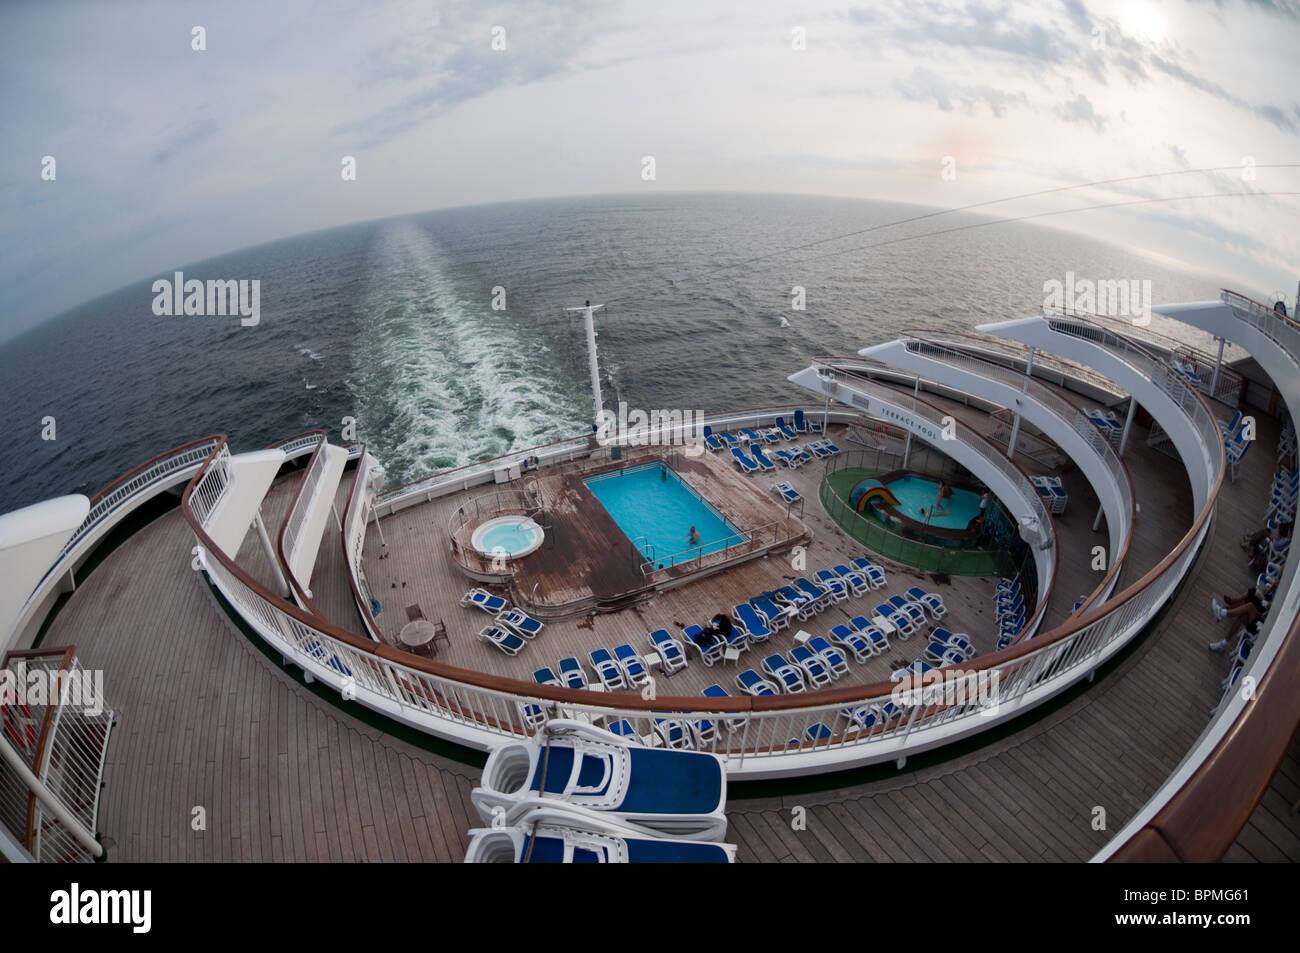 A fisheye photograph of the aft/stern of the P&O cruise ship 'Aurora'. Stock Photo